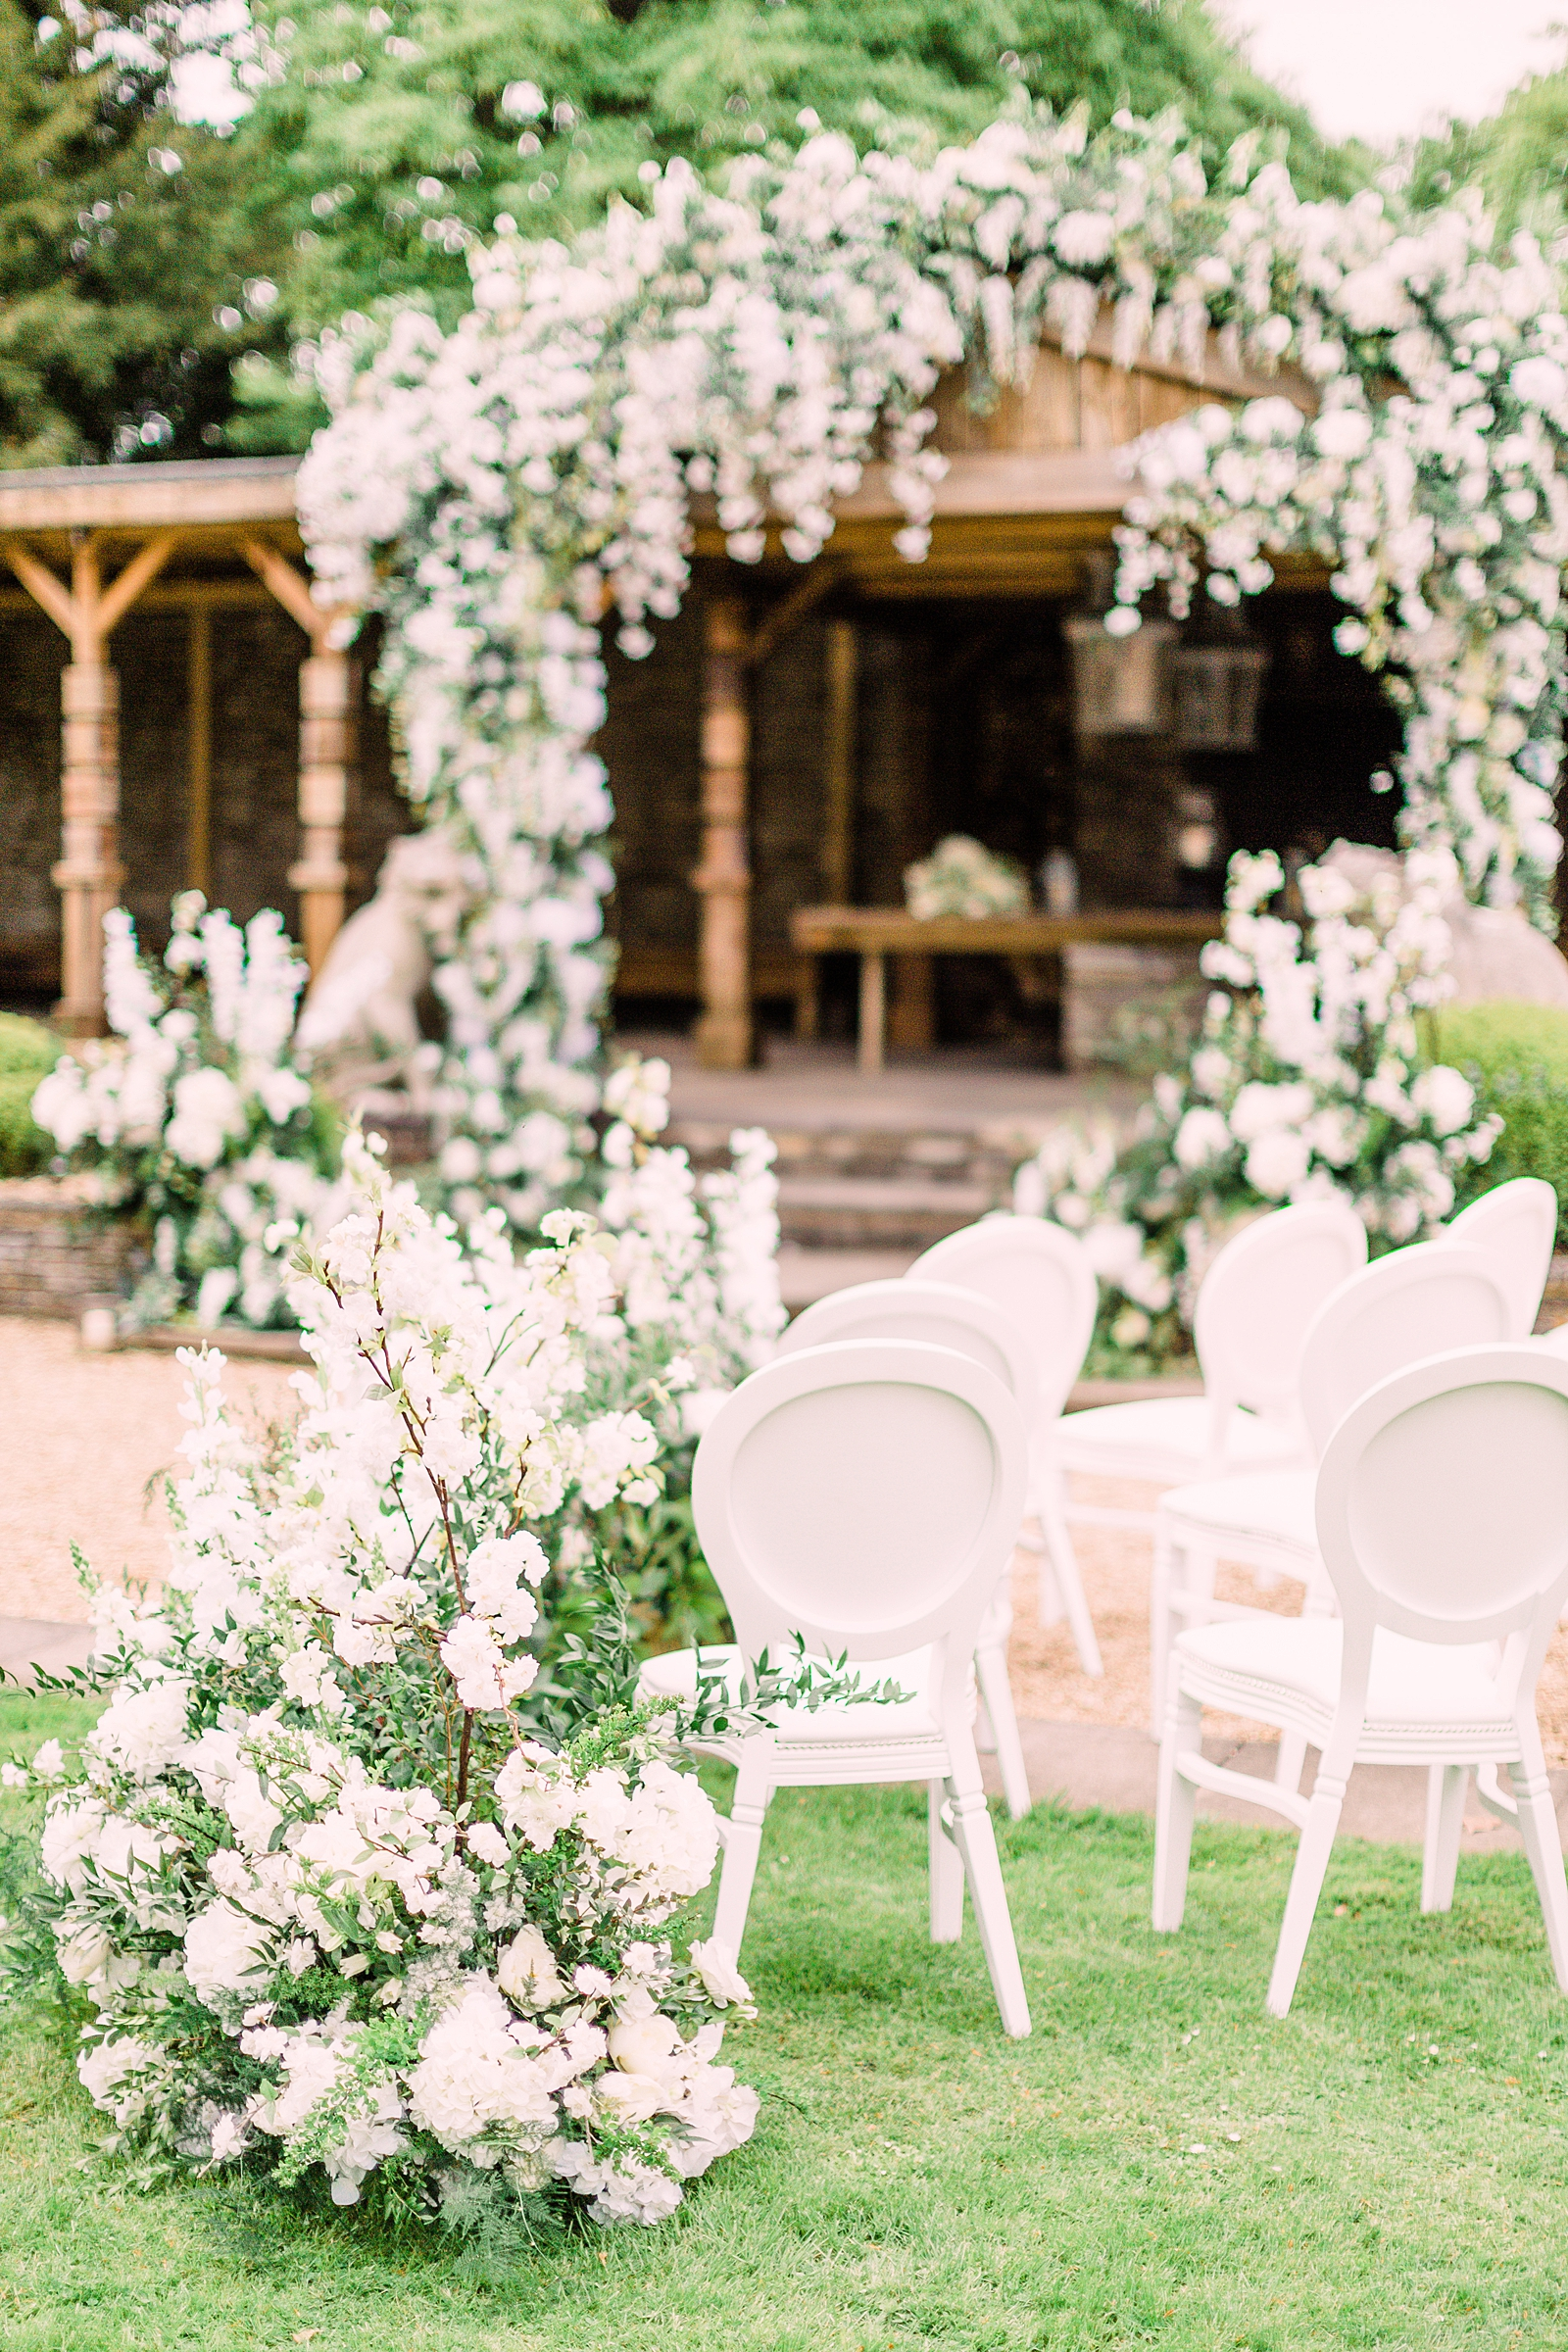 Charlotte Munro Weddings | Full the ultimate in timeless elegance and classical luxury wedding style, white floral's are the obvious choice. Today we're bringing you luxury summer wedding inspiration at the gorgeous wedding venue, Aynhoe Park in Oxfordshire.